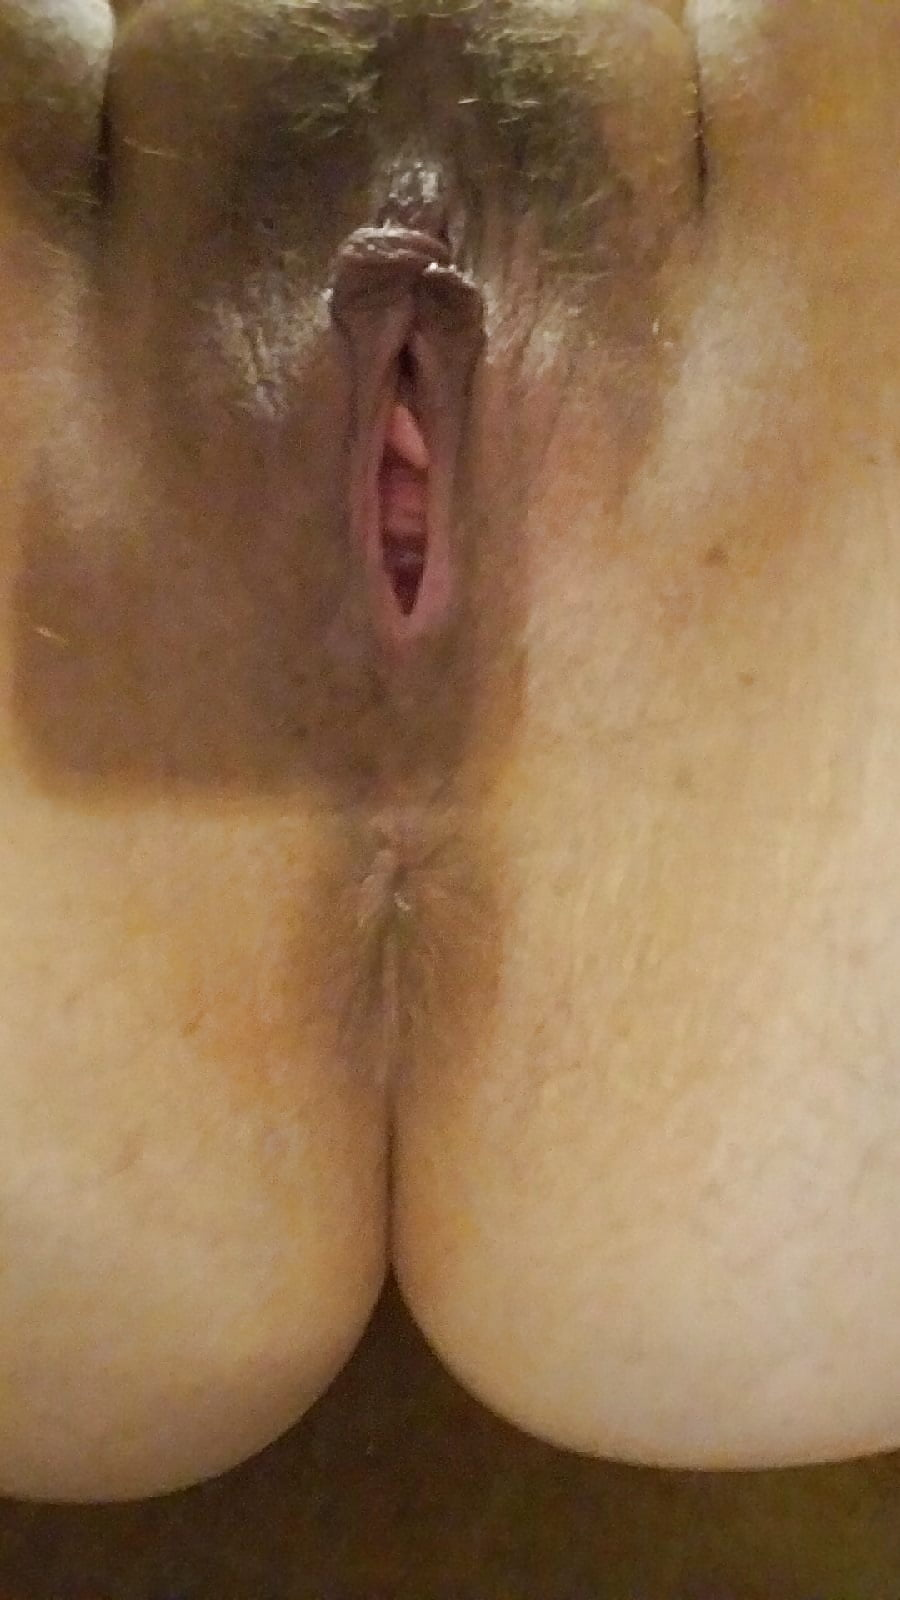 Marathi uncle drinking pee and fucking his wife - 1 8